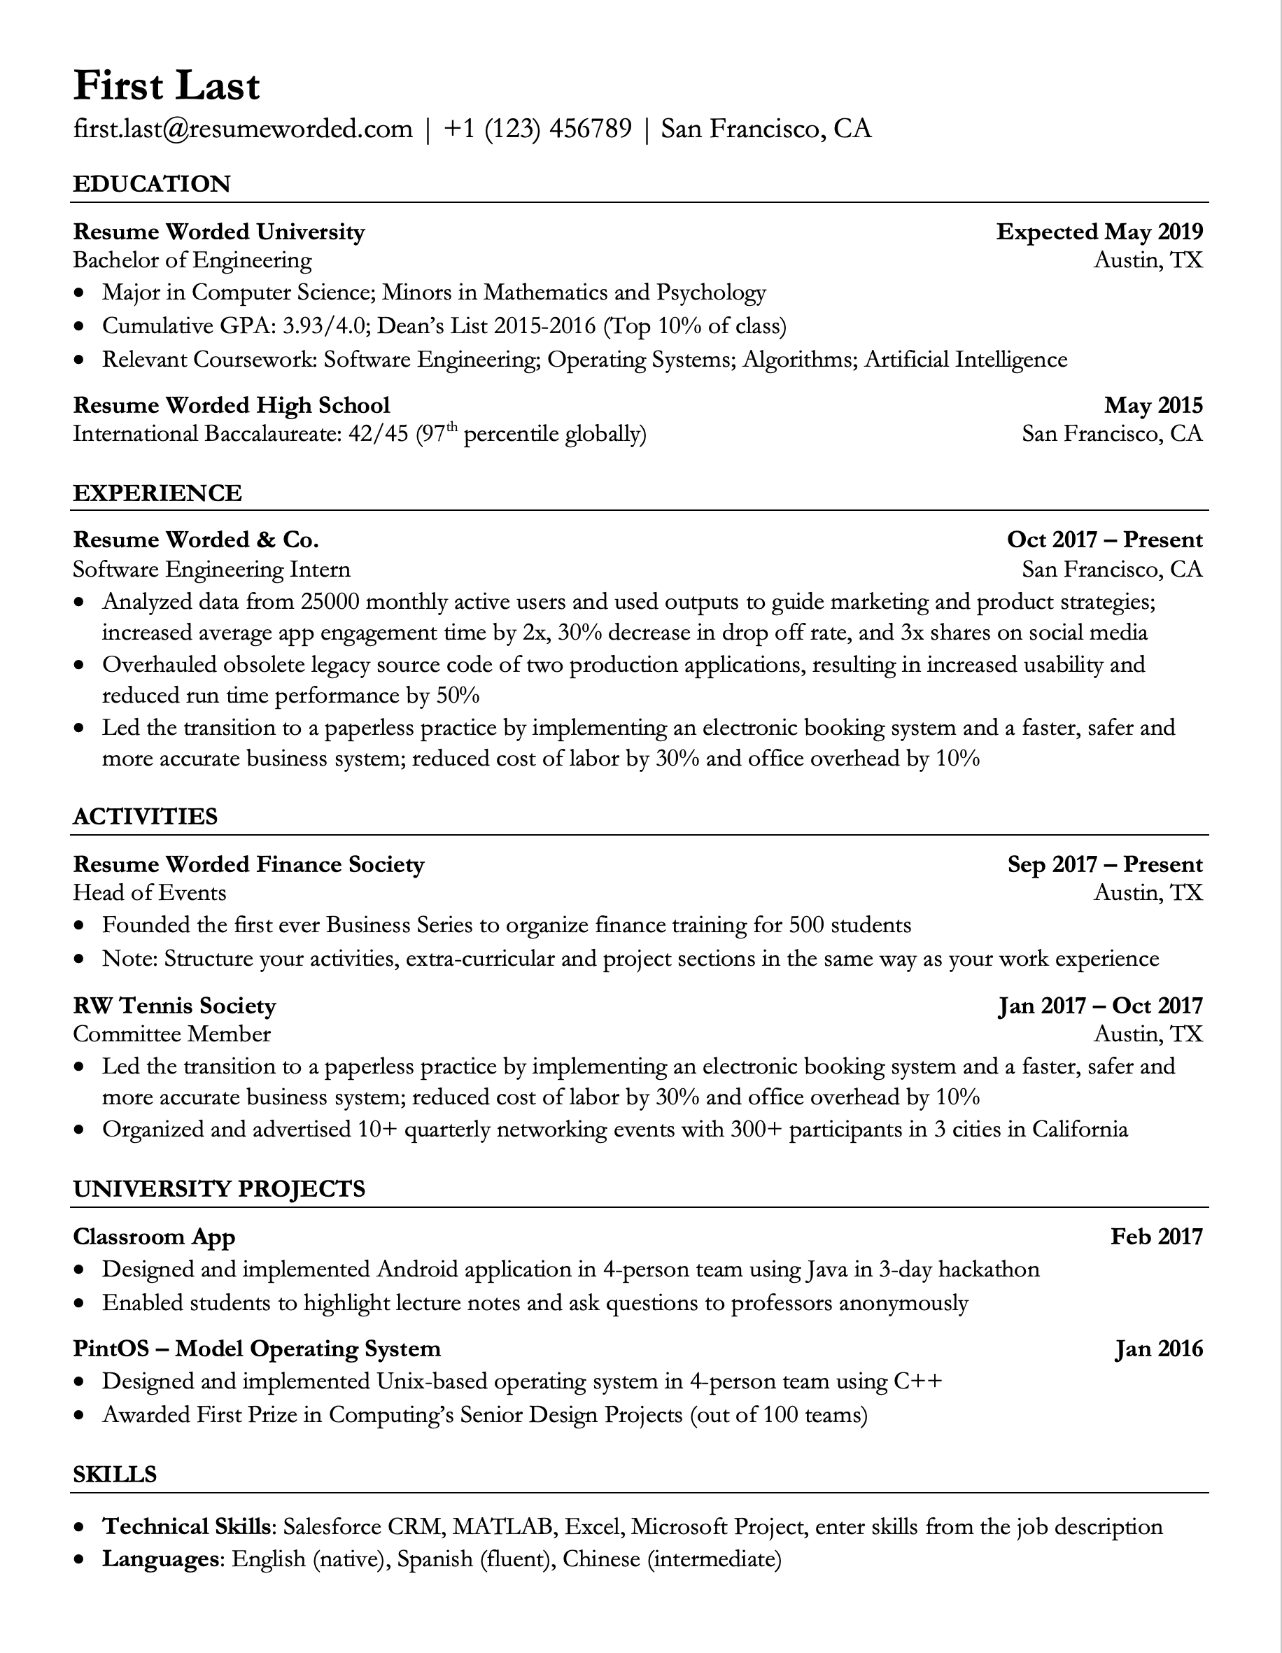 Professional ATS Resume Templates for Experienced Hires and